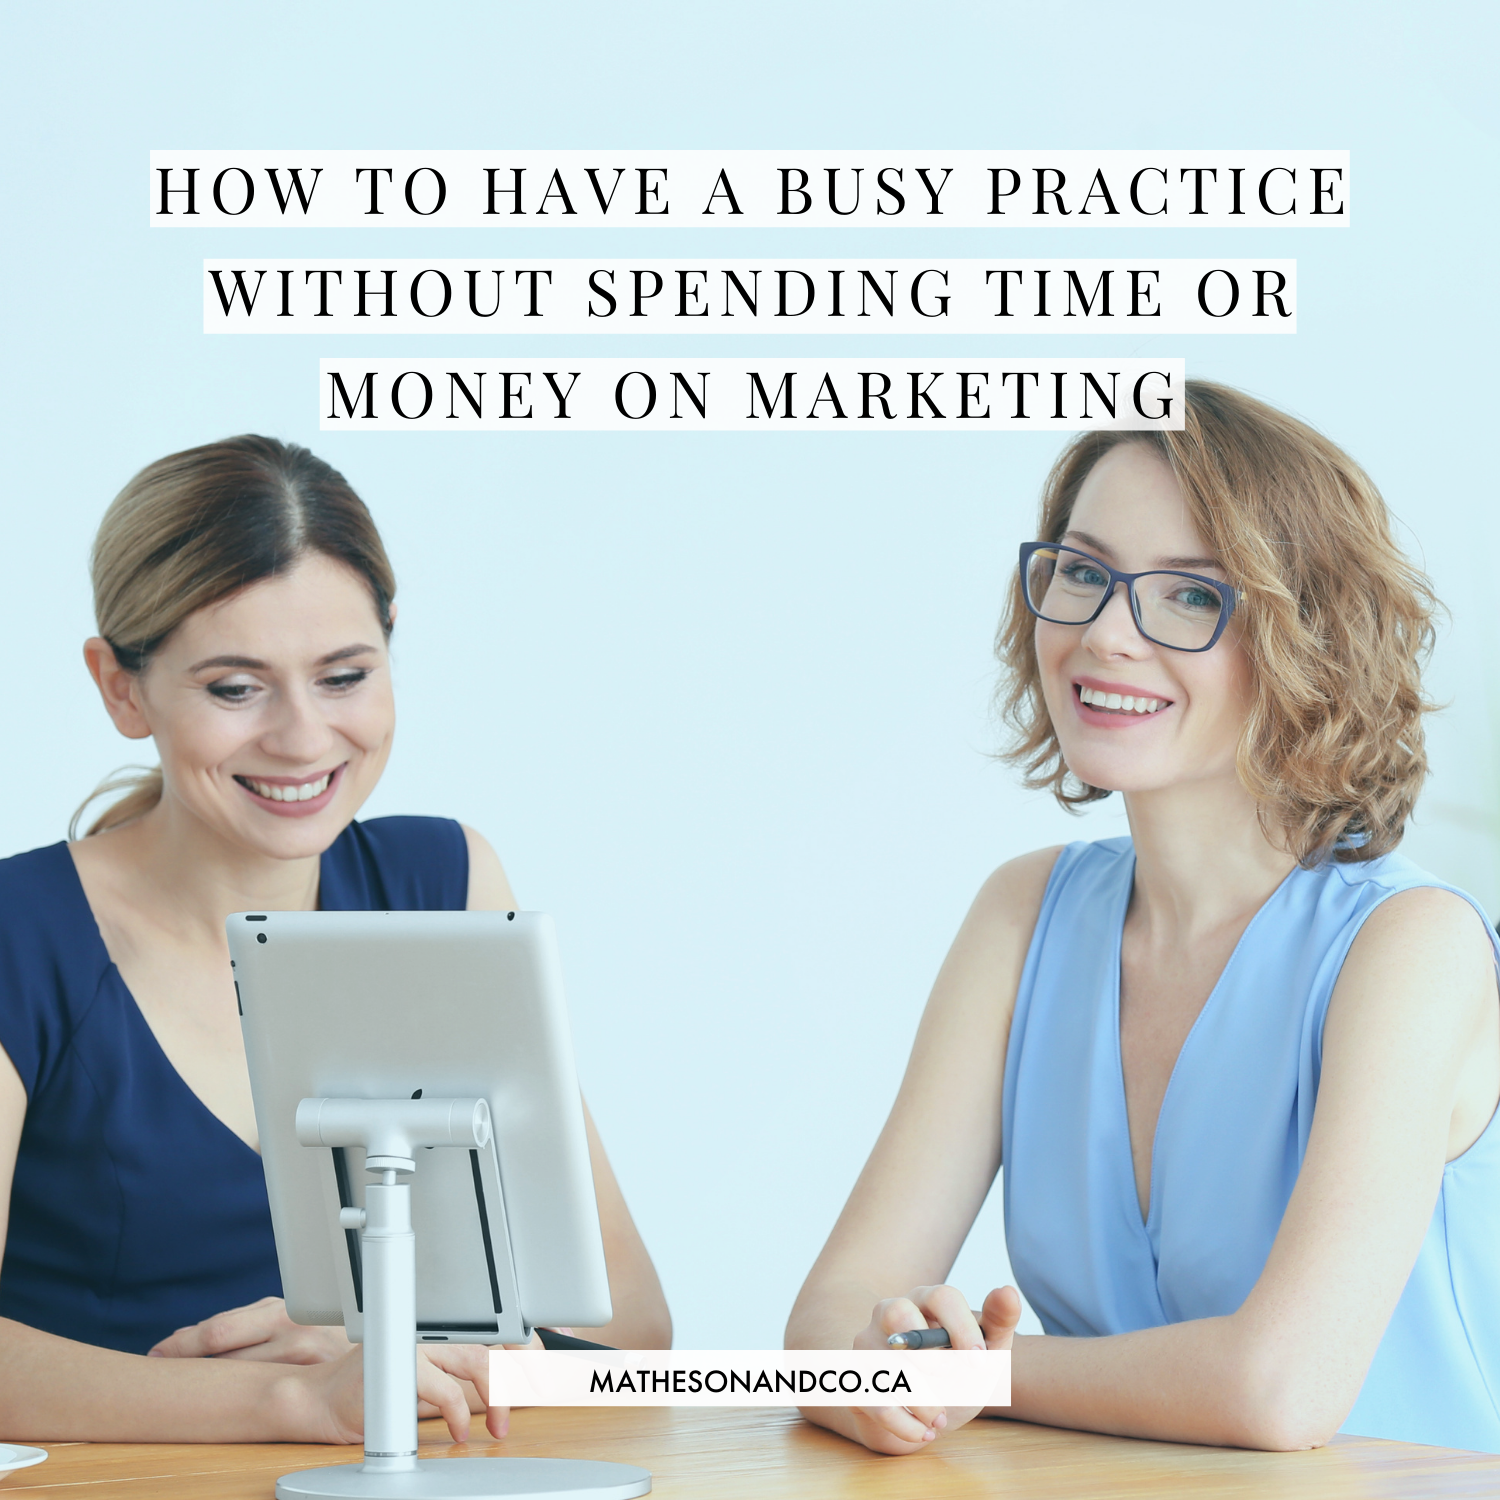 How To Have A Busy Practice Without Spending Time Or Money On Marketing